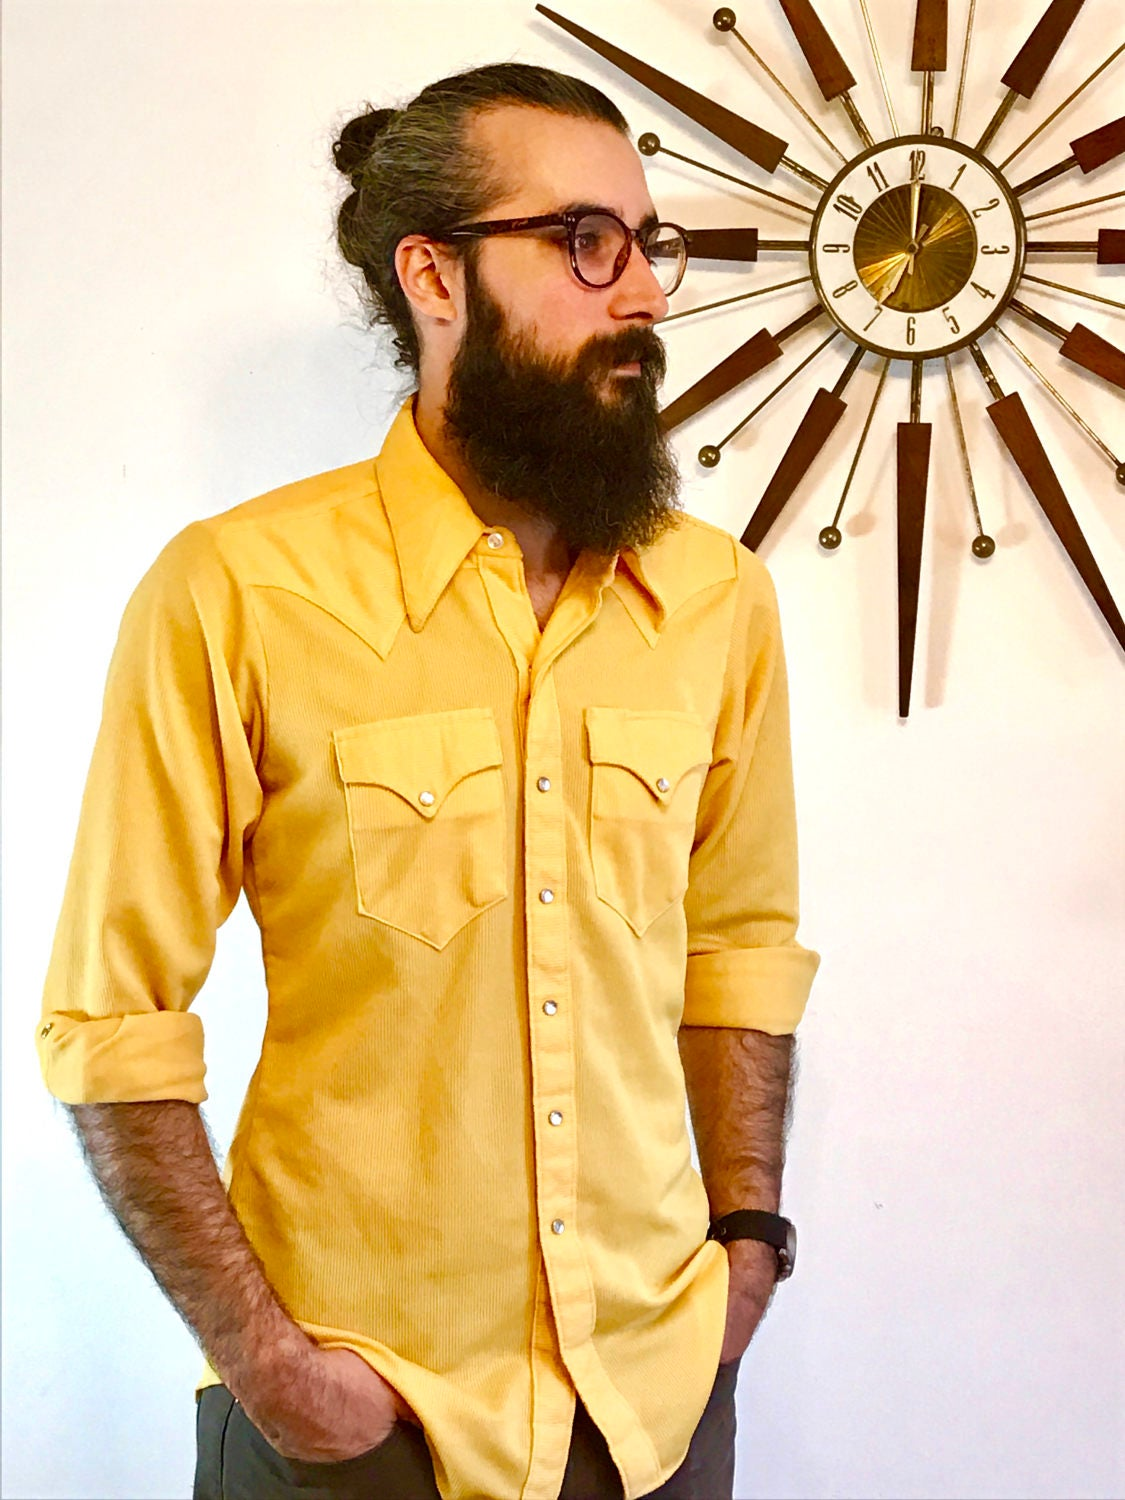 f1a98cf388 Vintage 60s Yellow Rockmount Ranch Wear Western Pearl Snap Shirt ...